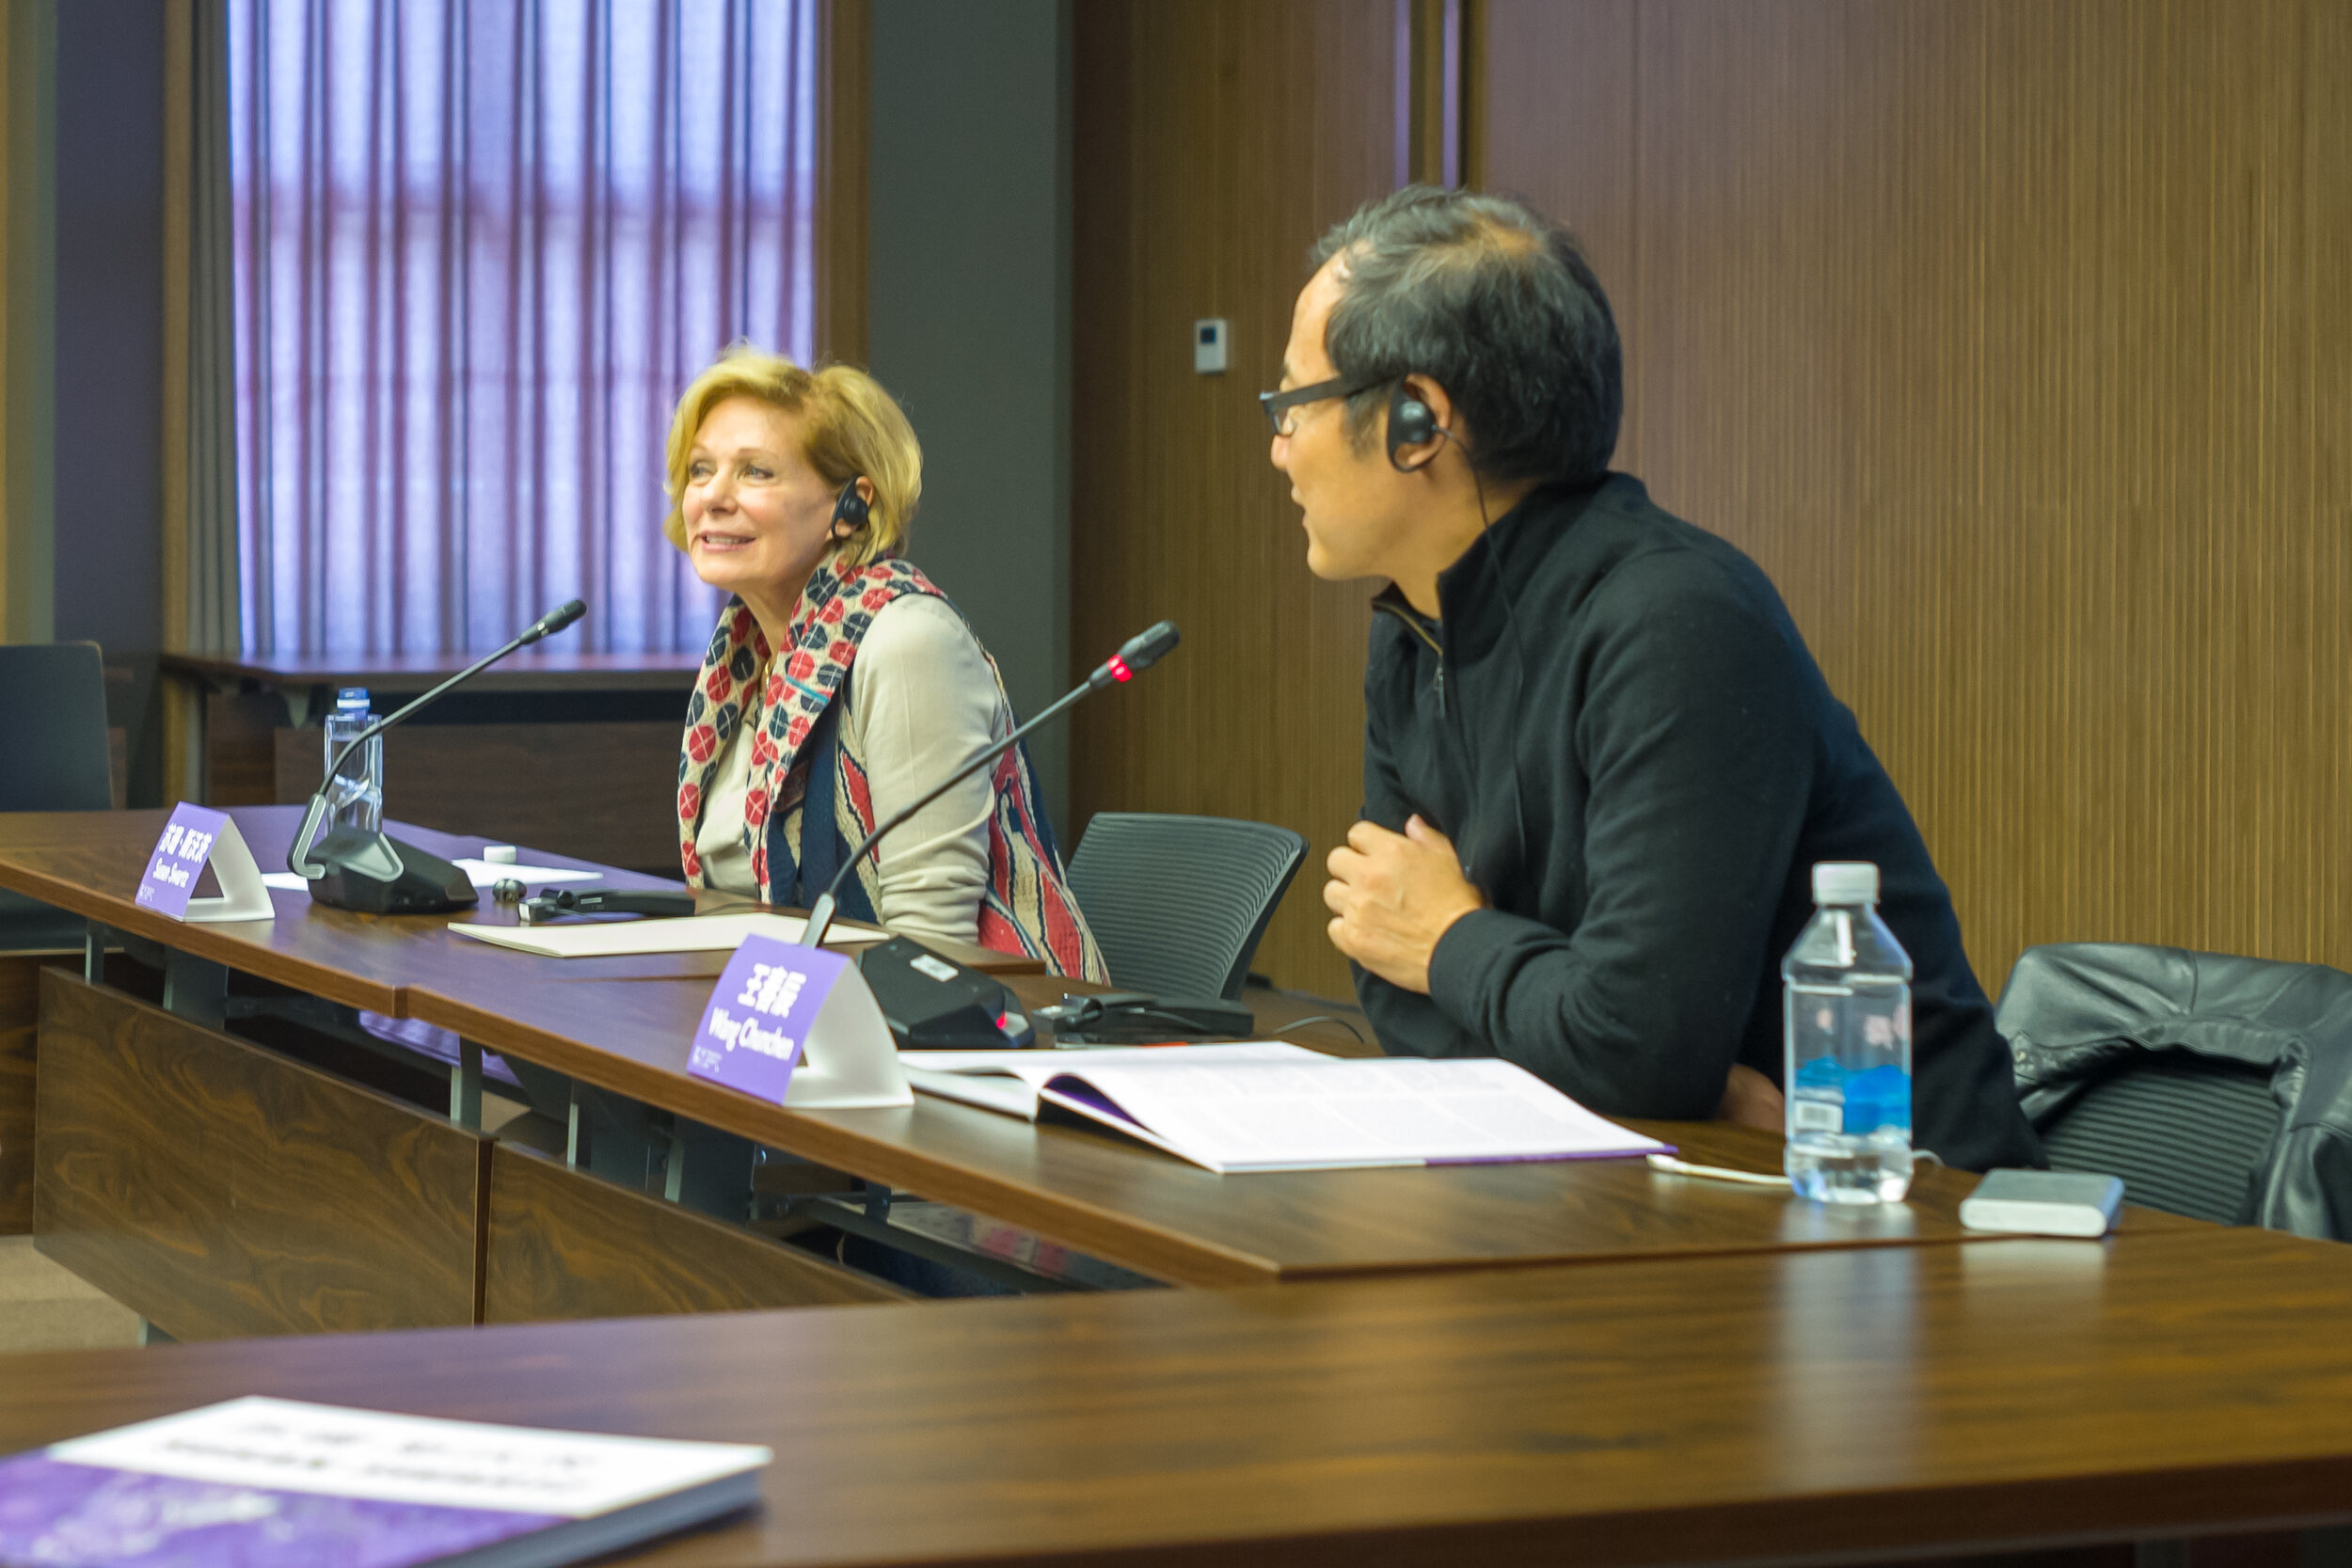 Susan with Wang Chunchen, Moderator